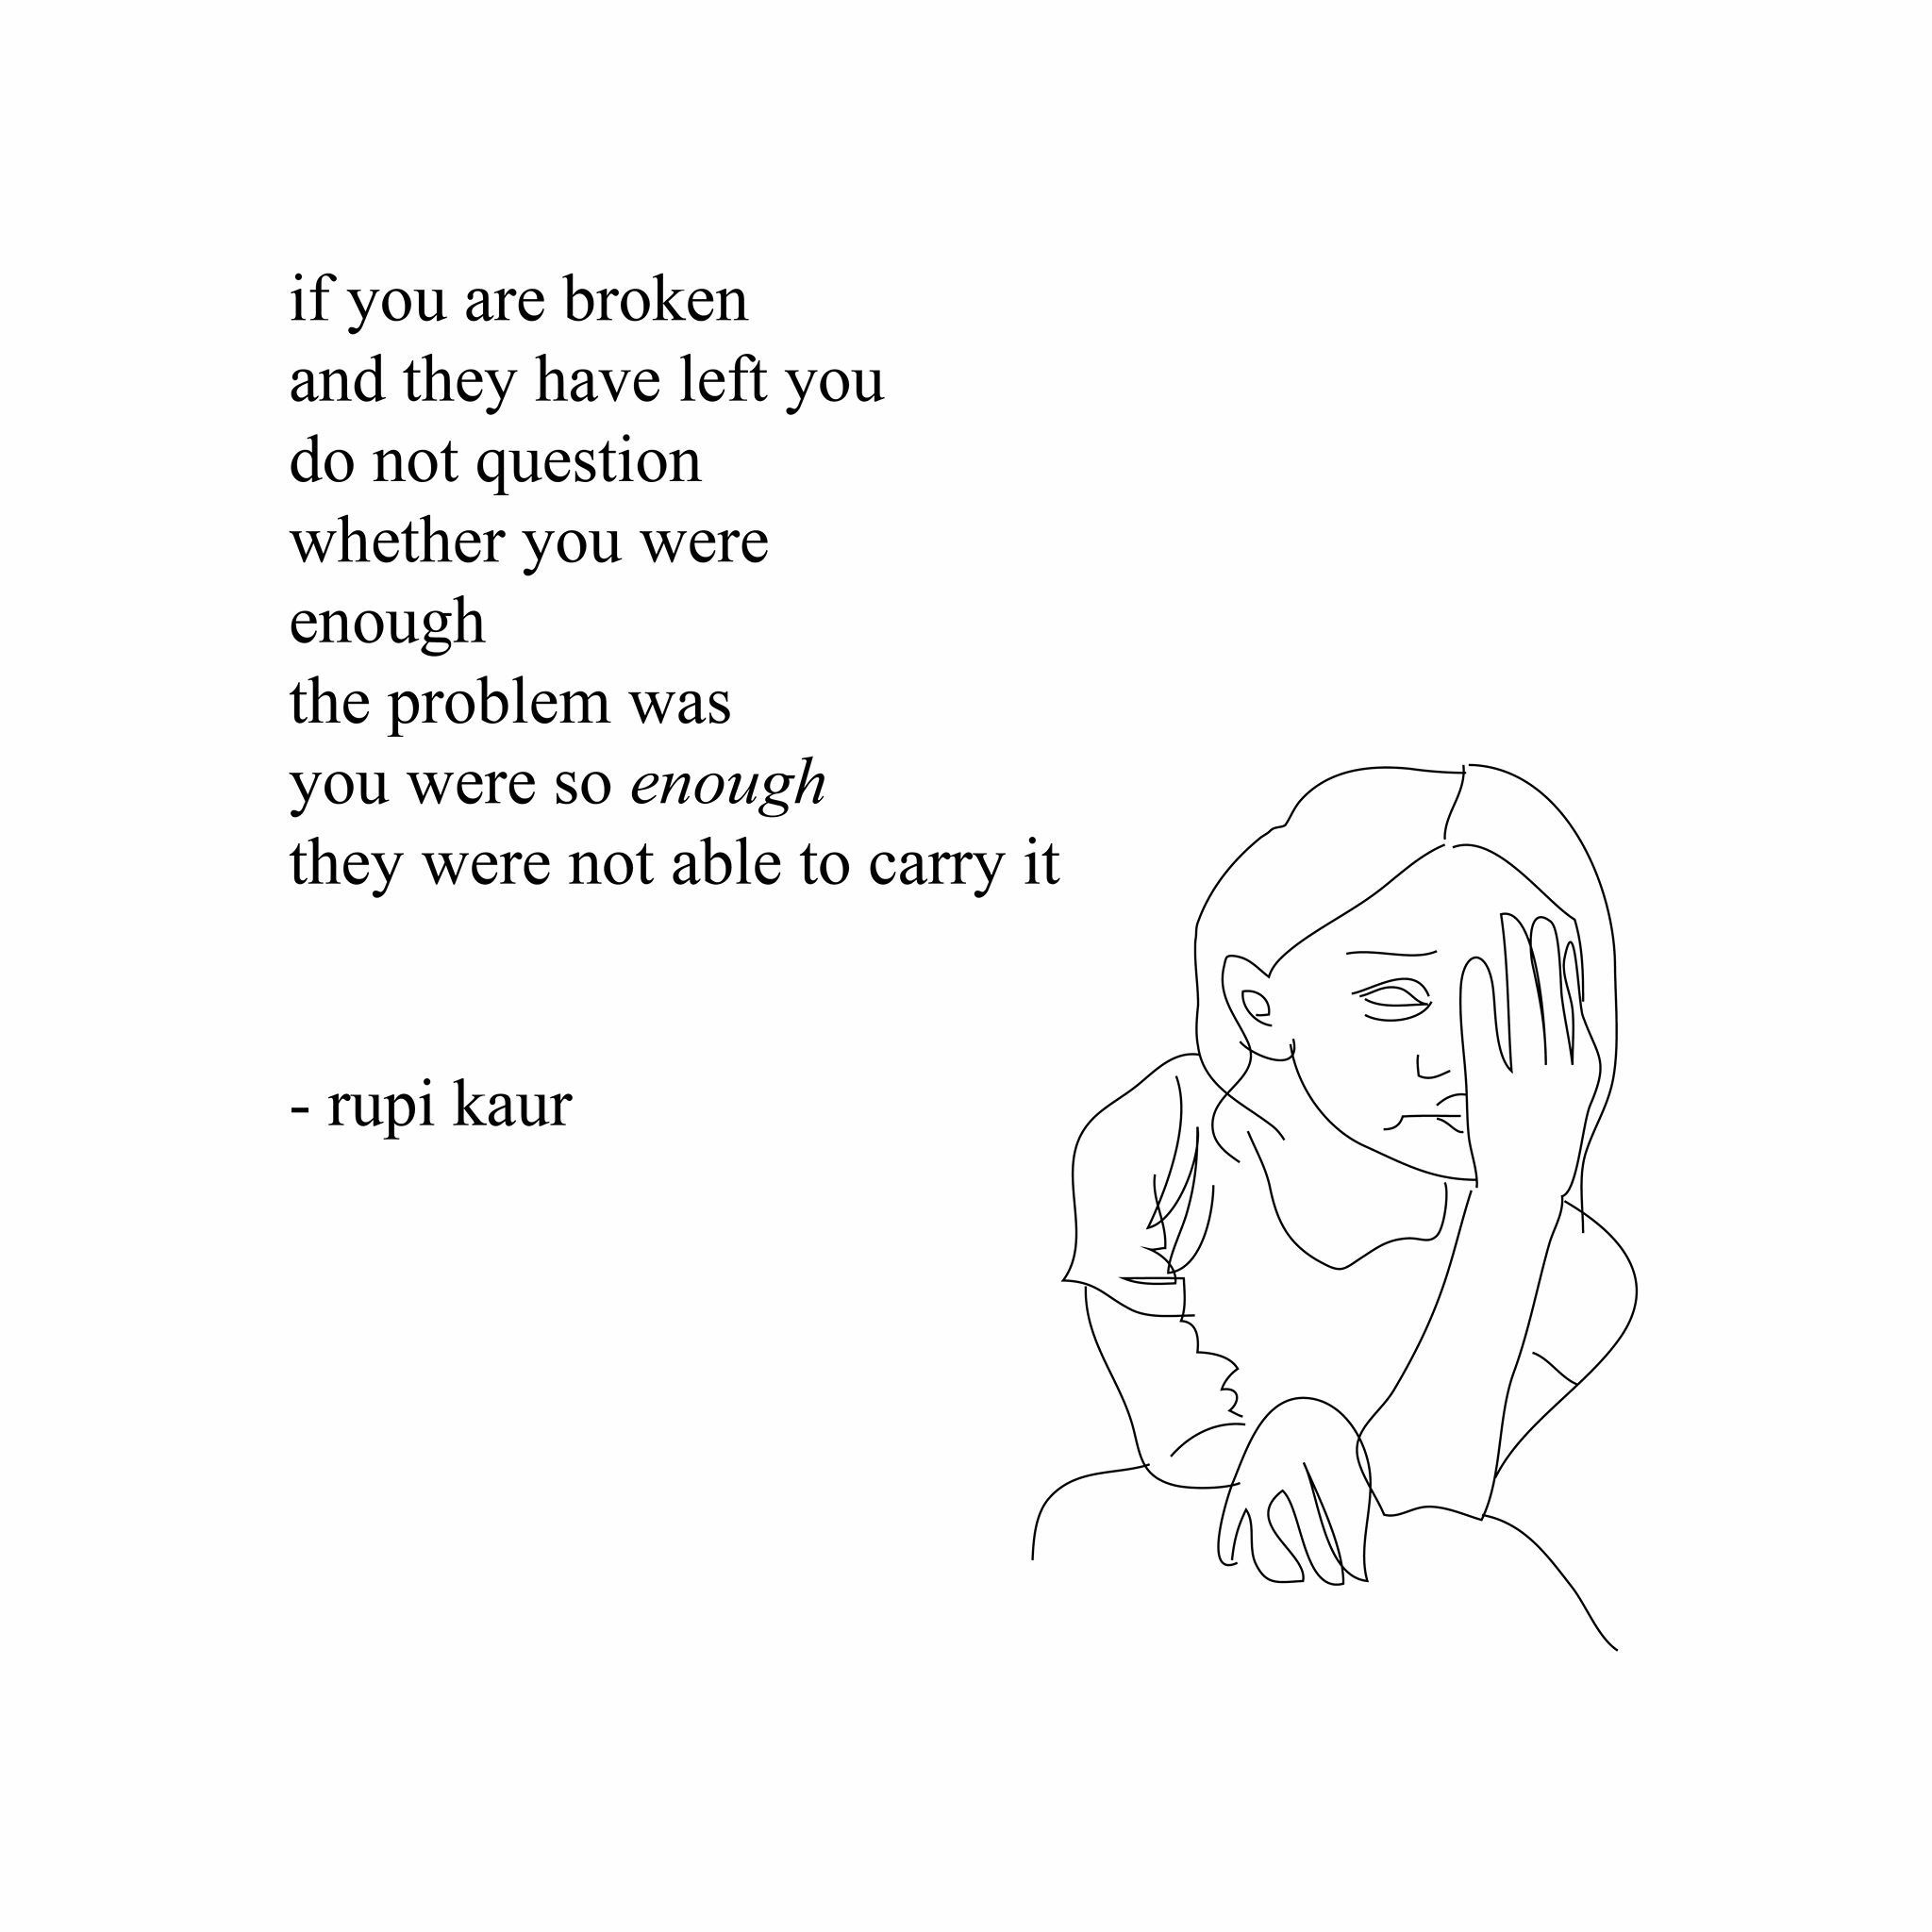 Pin By Brindha Menon On The Art Of Poetry Literature Rupi Kaur